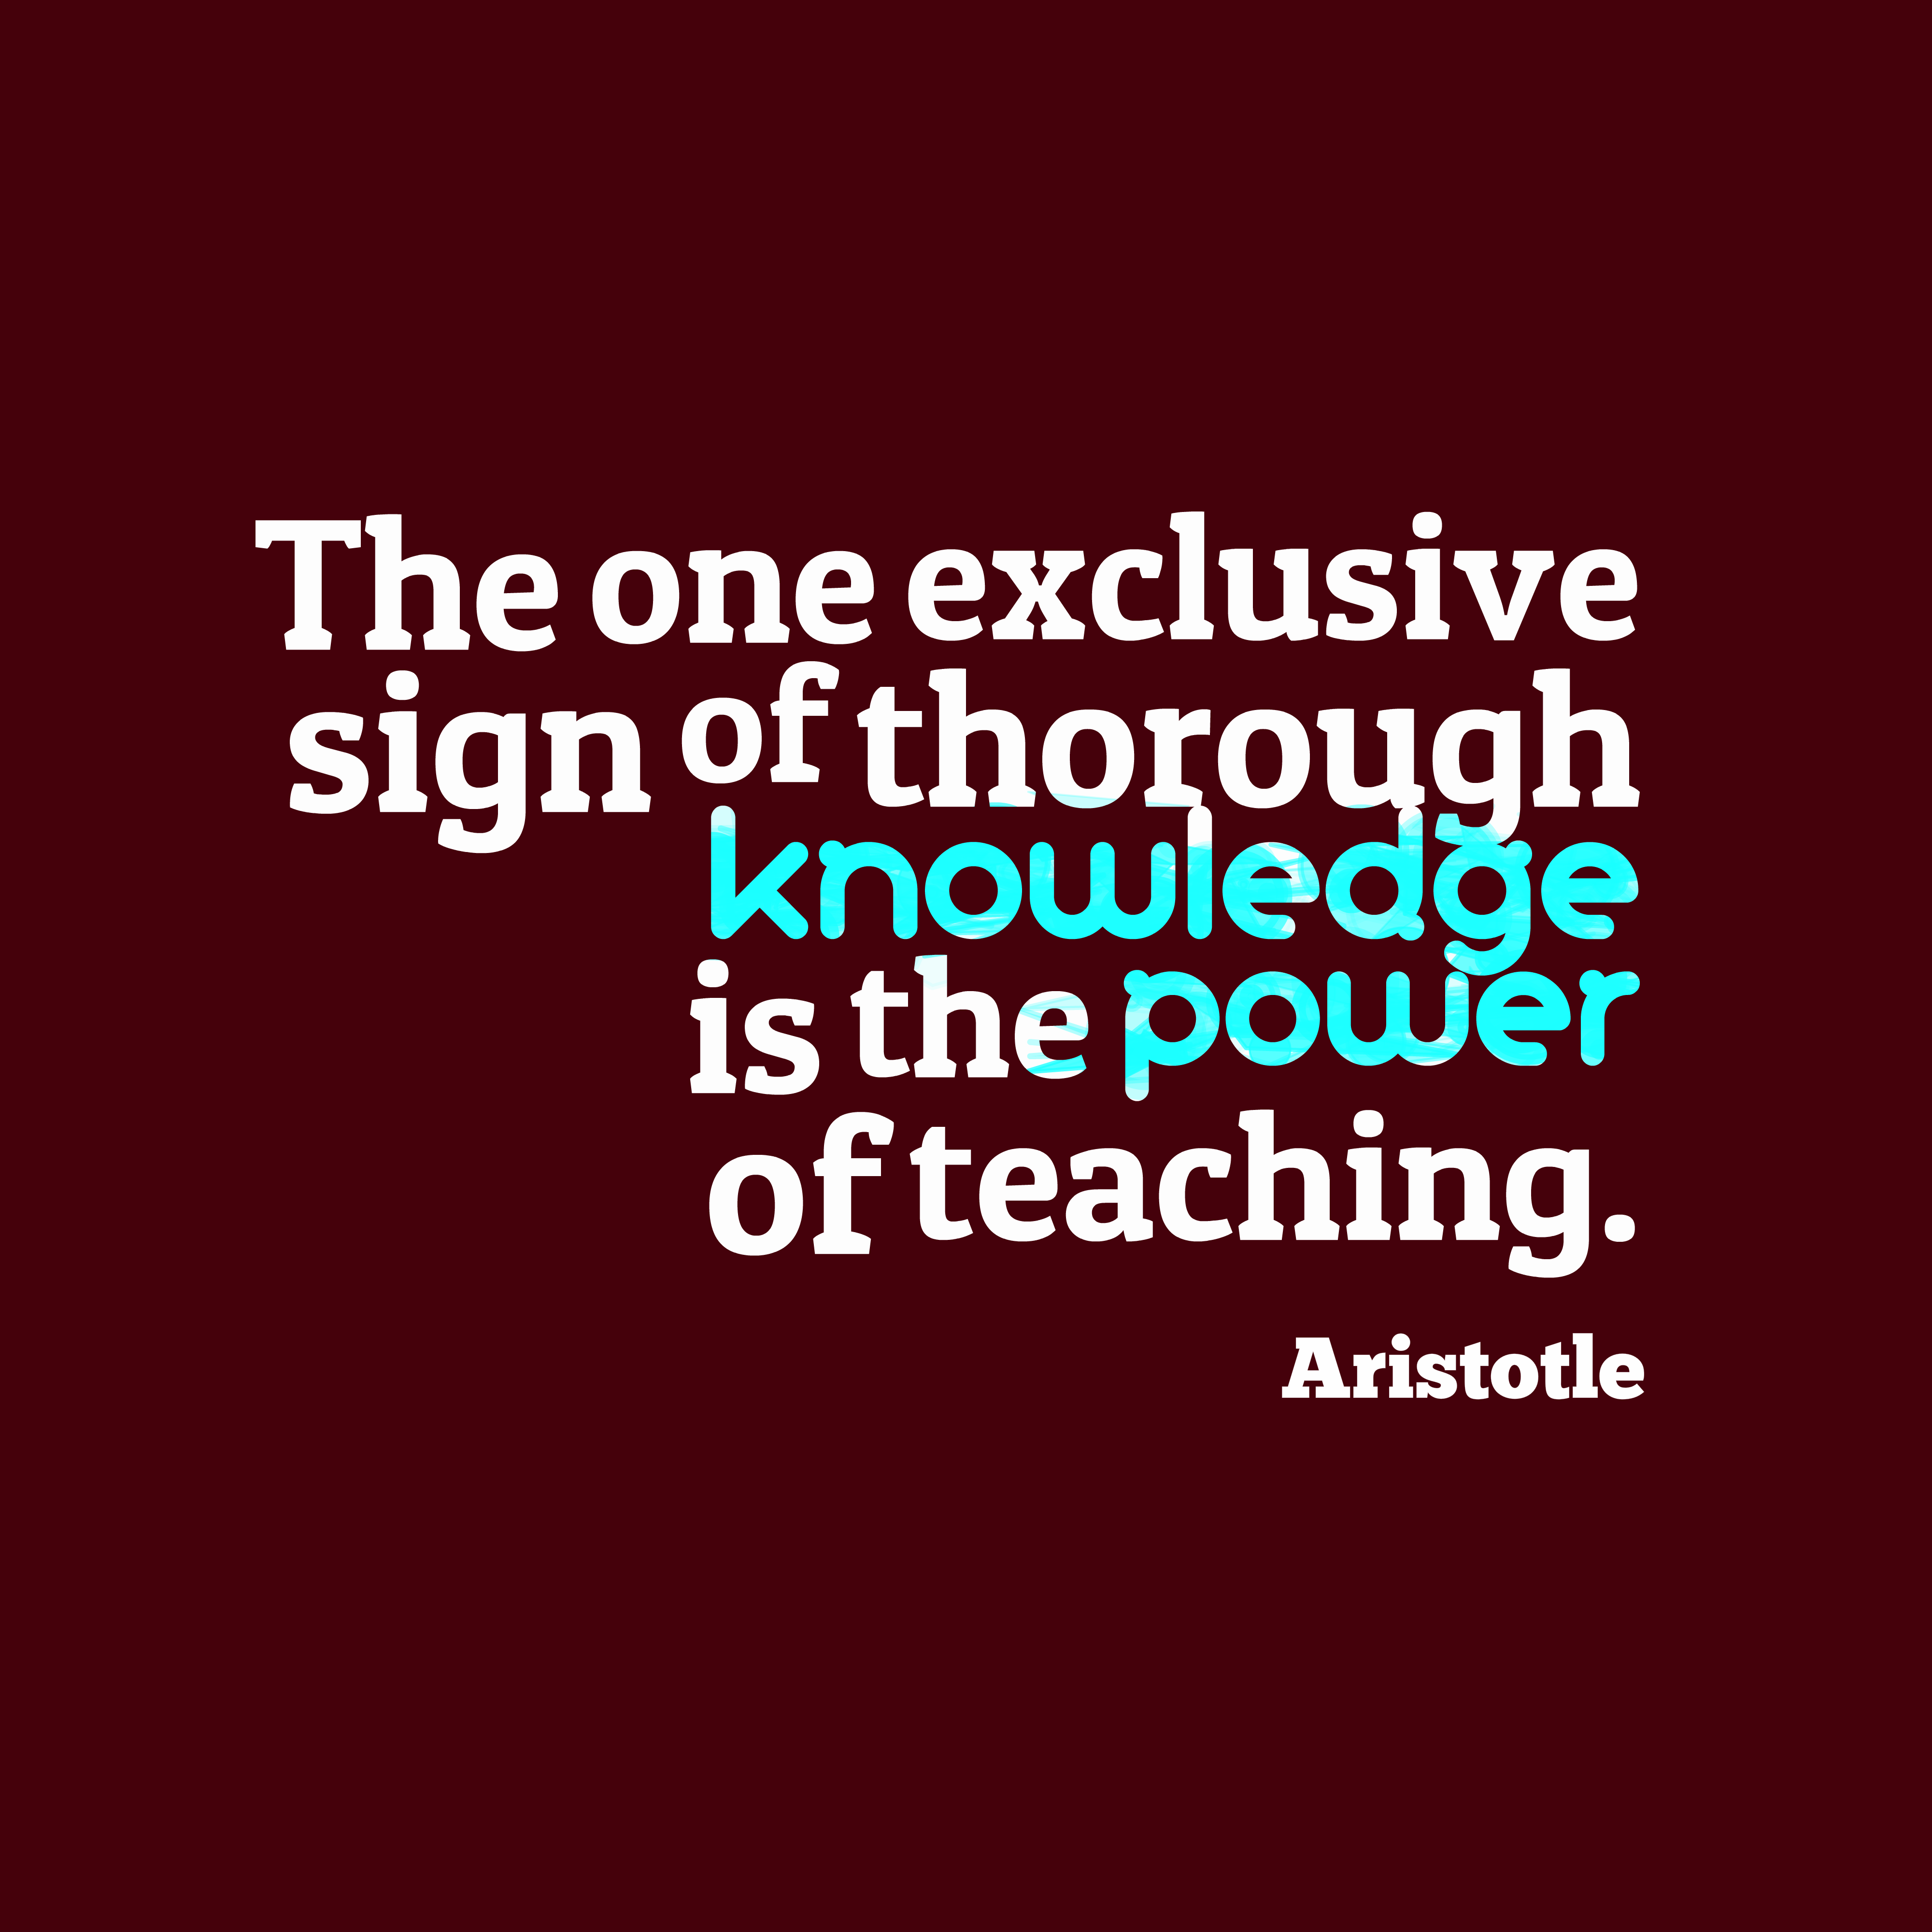 Quotes image of The one exclusive sign of thorough knowledge is the power of teaching.